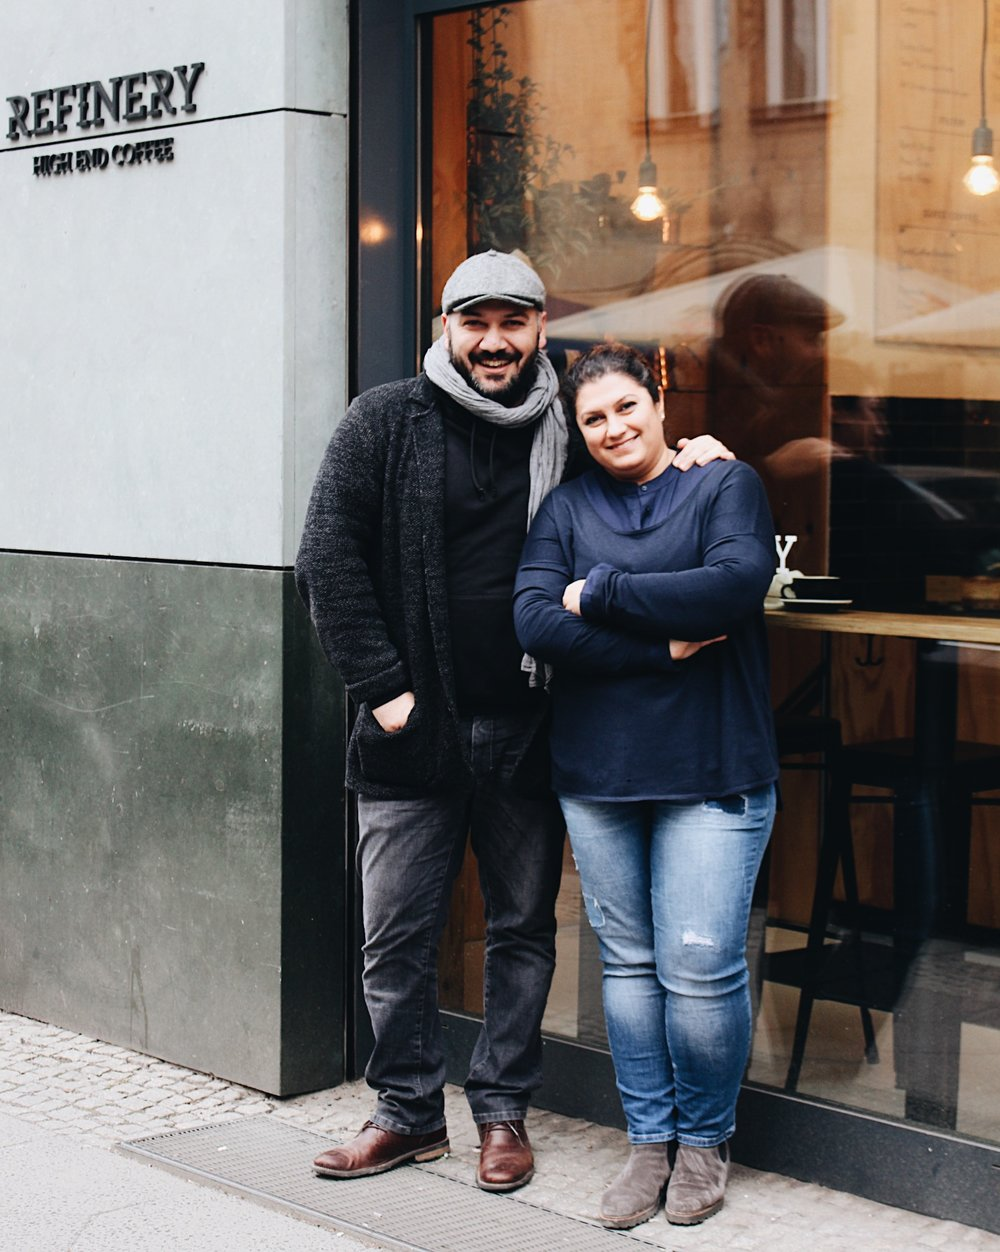 @a_uste / @thomas_k / Bora and Tansel Özbek, co-owners of Berlin's Refinery High End Coffee.